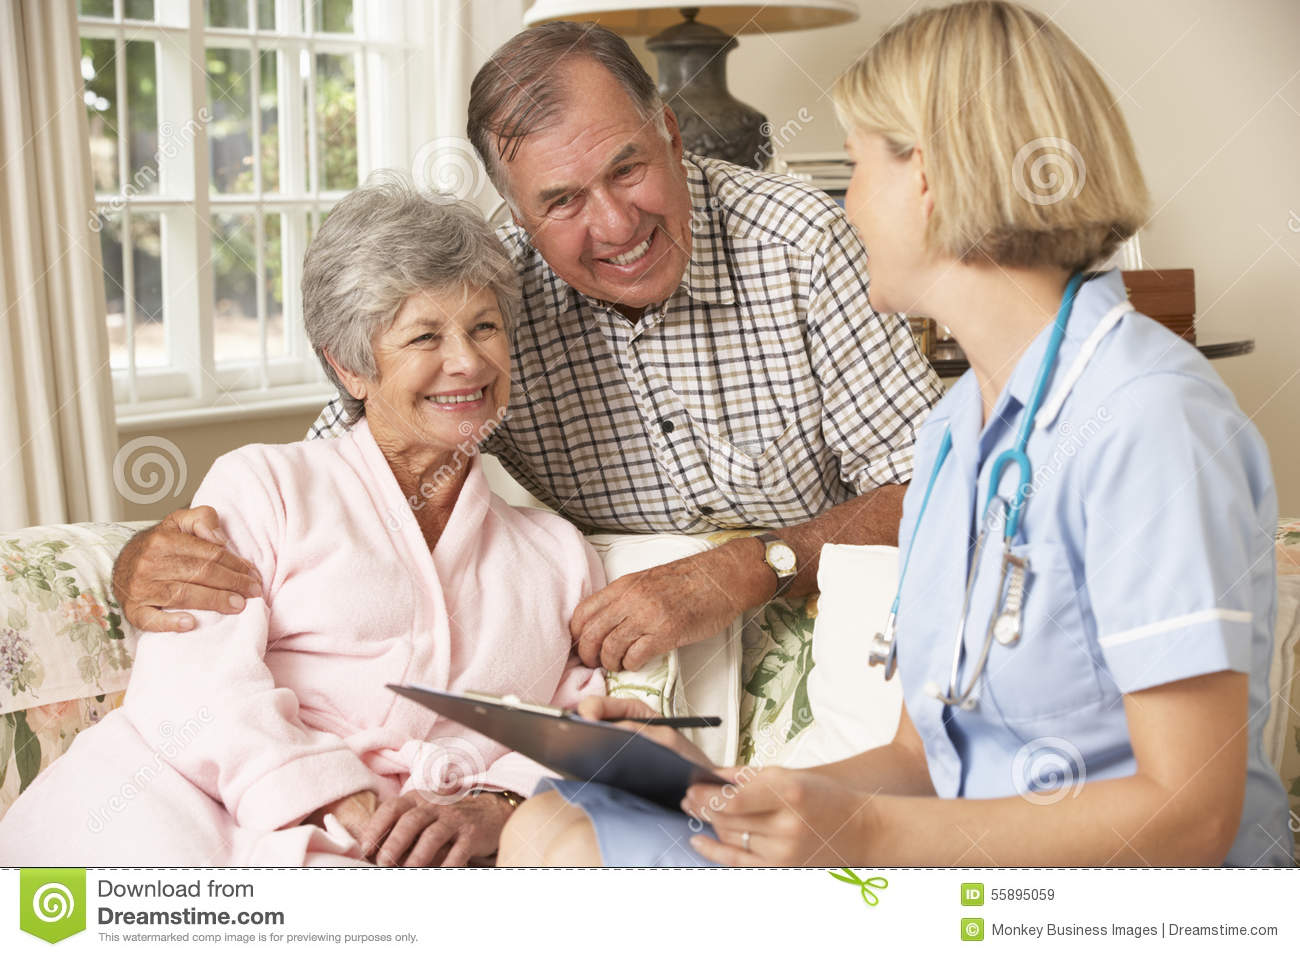 Retired Senior Woman Having Health Check With Nurse At Home